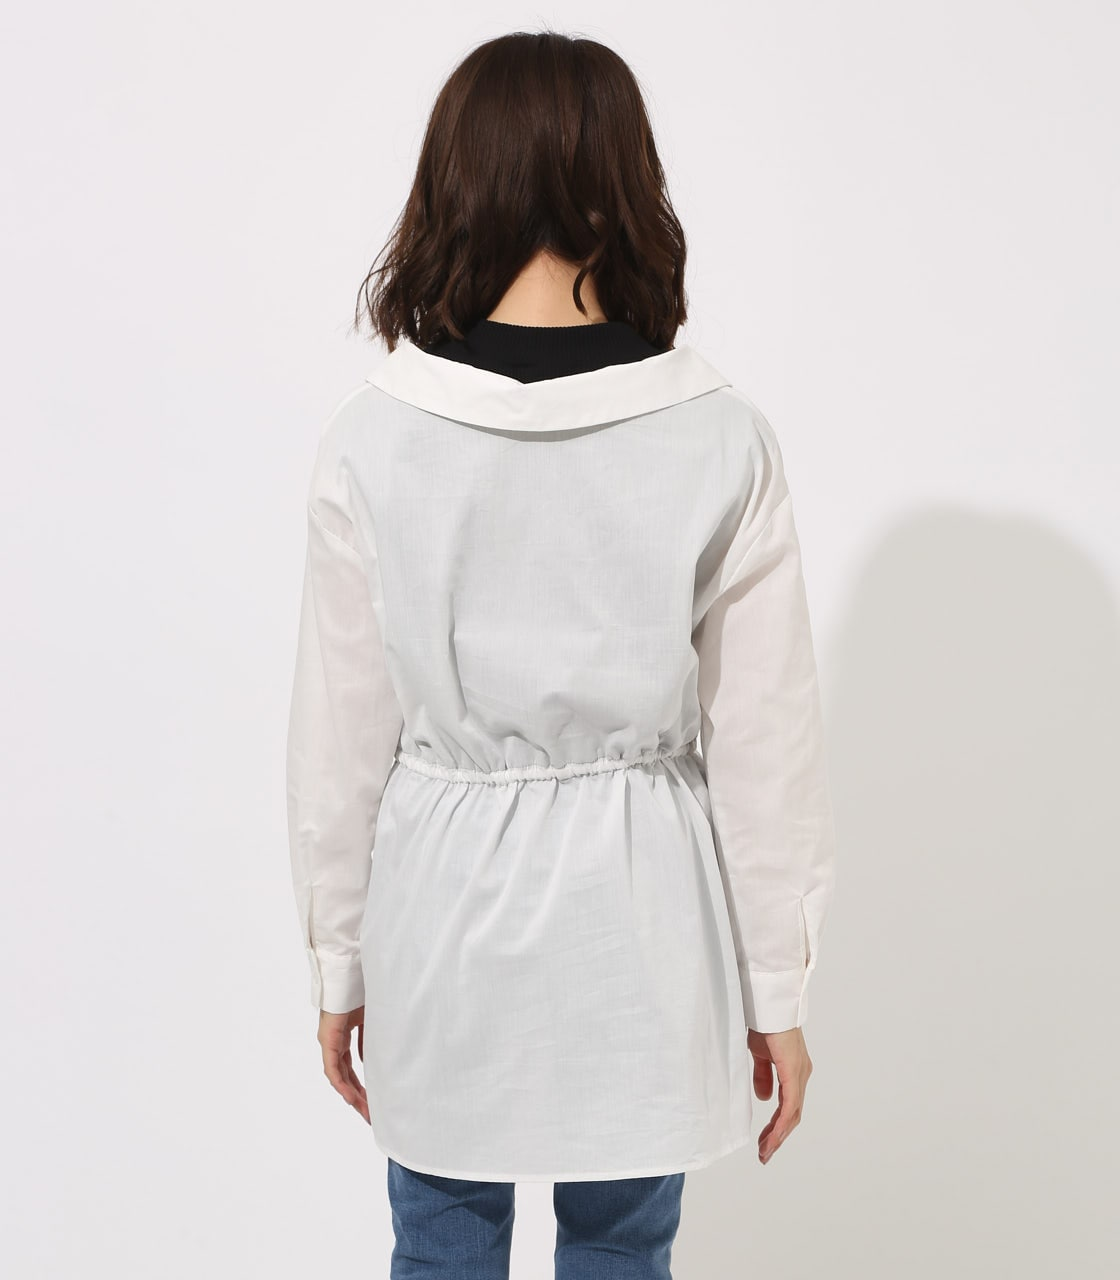 【AZUL BY MOUSSY】Waist shirring layered blouse 詳細画像 O/WHT 7